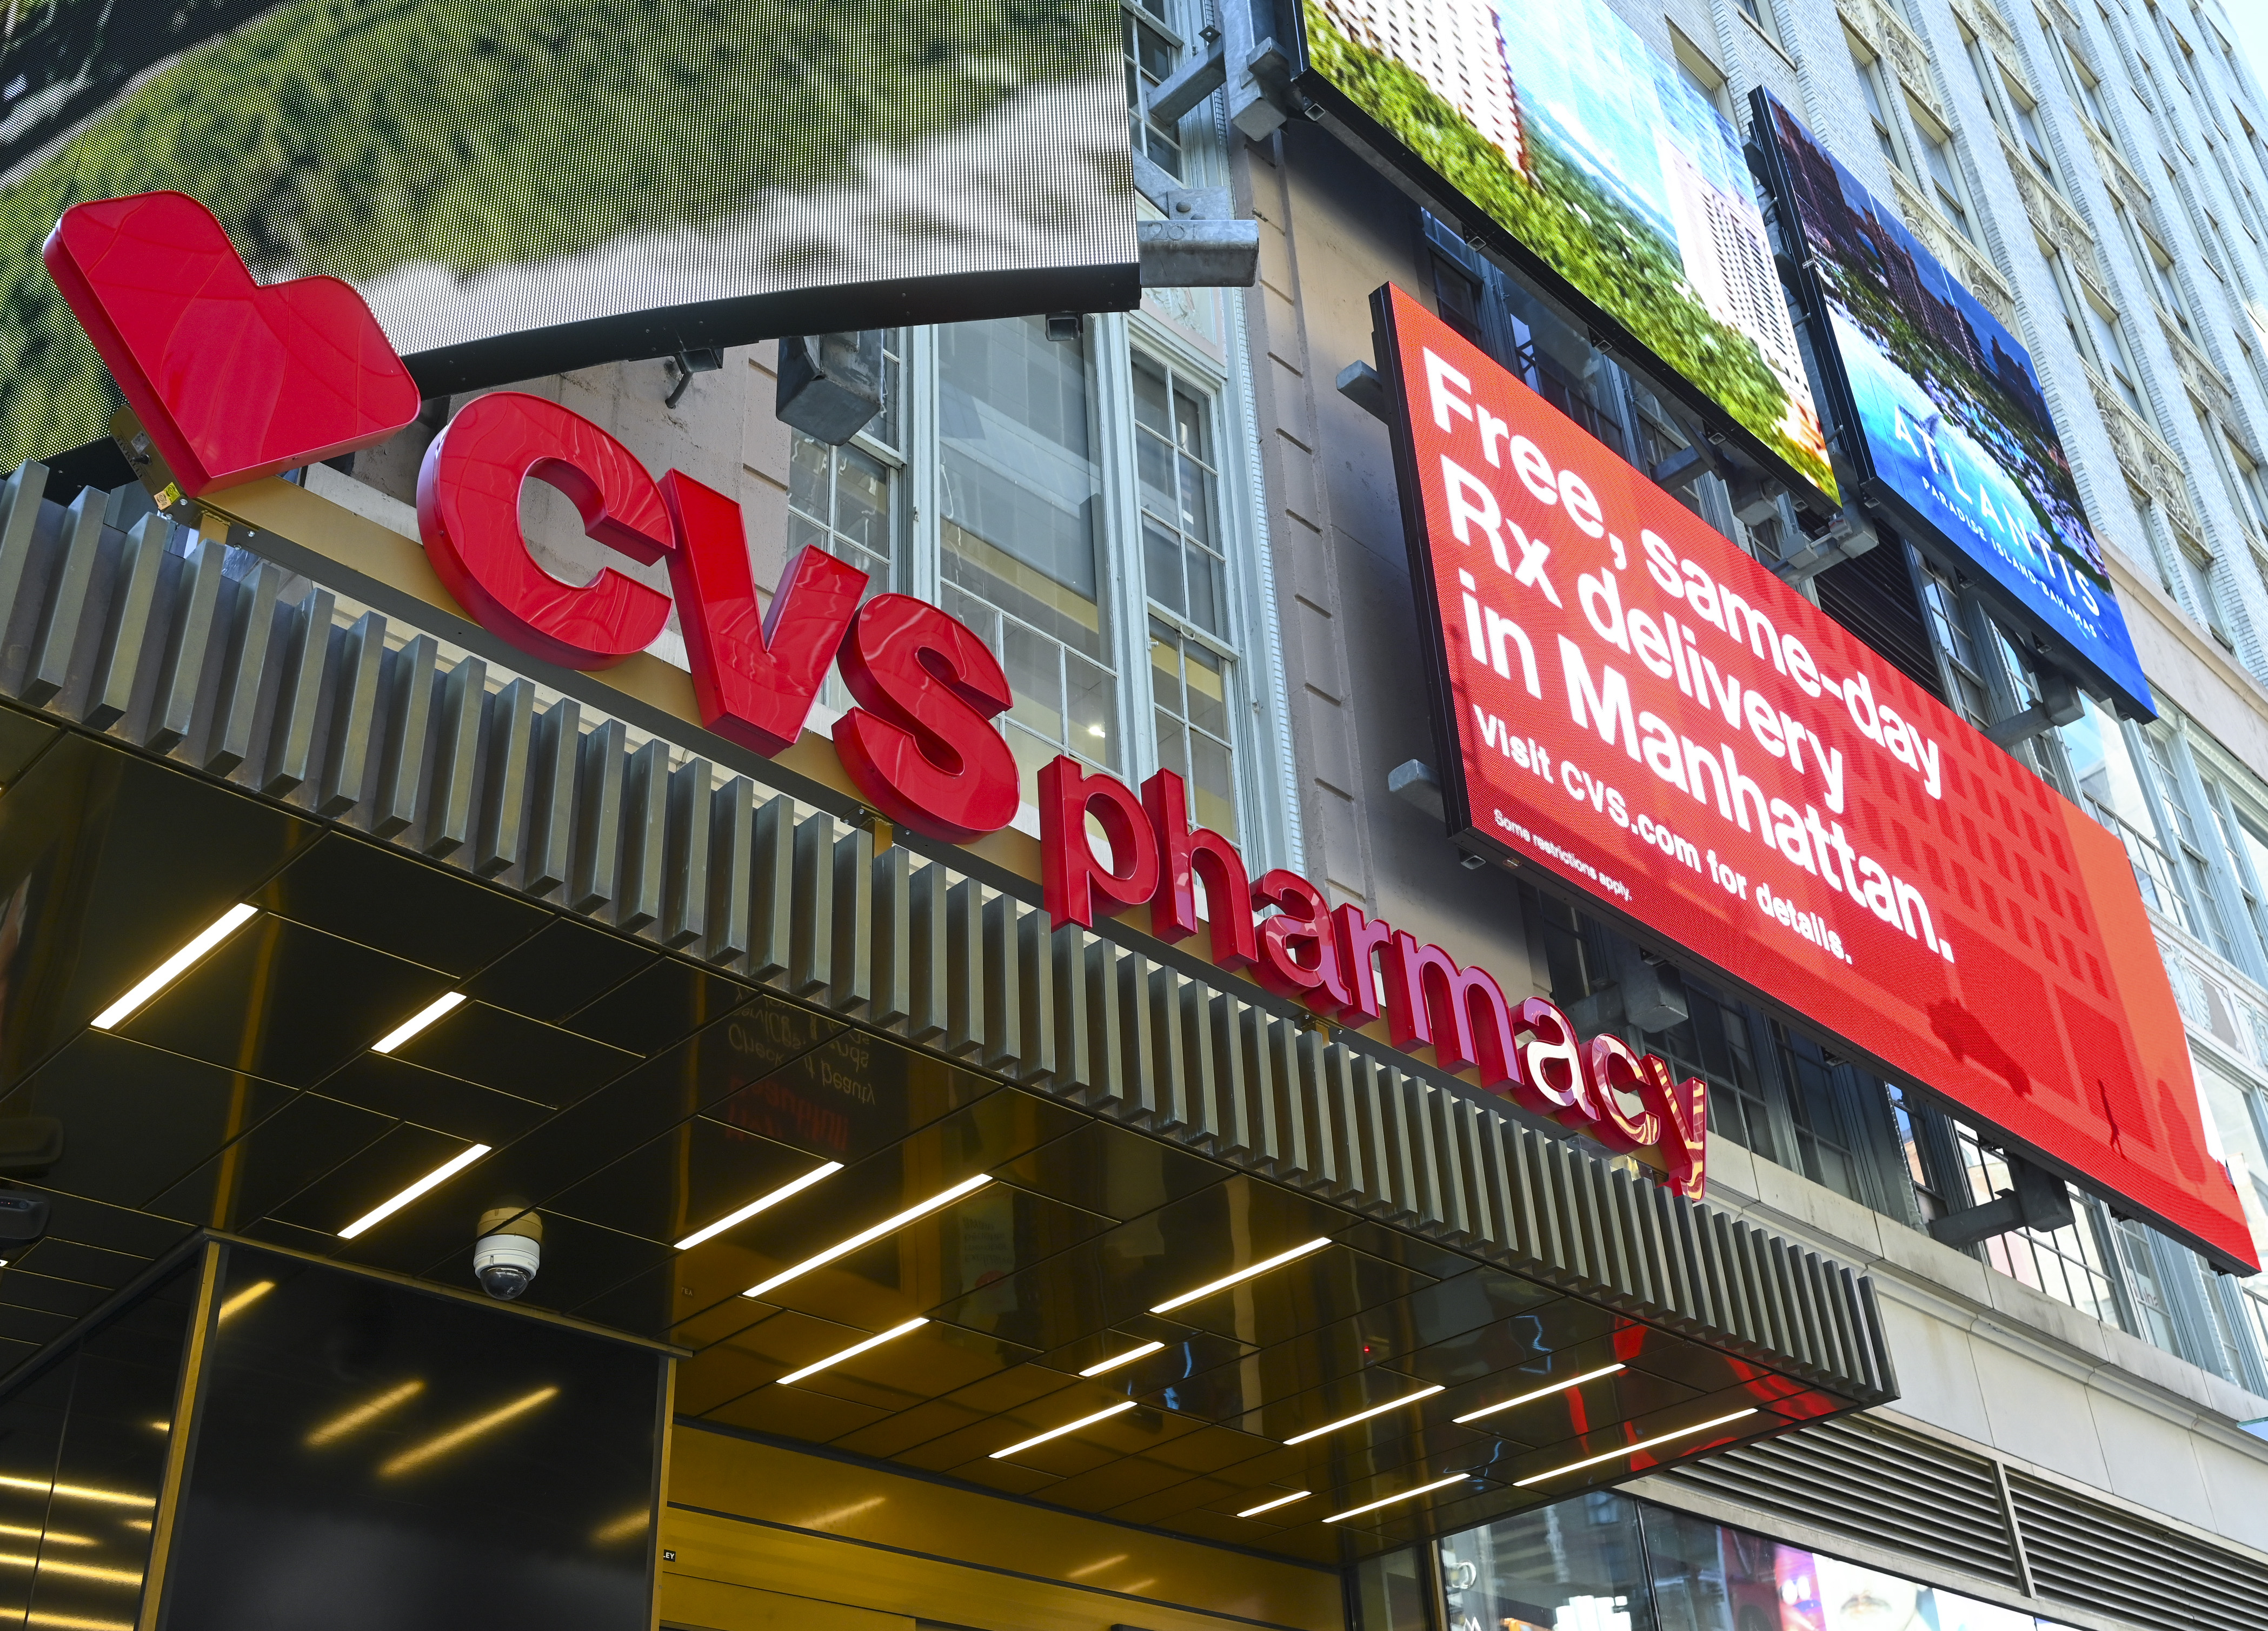 The exterior of a CVS Pharmacy in Manhattan, New York.